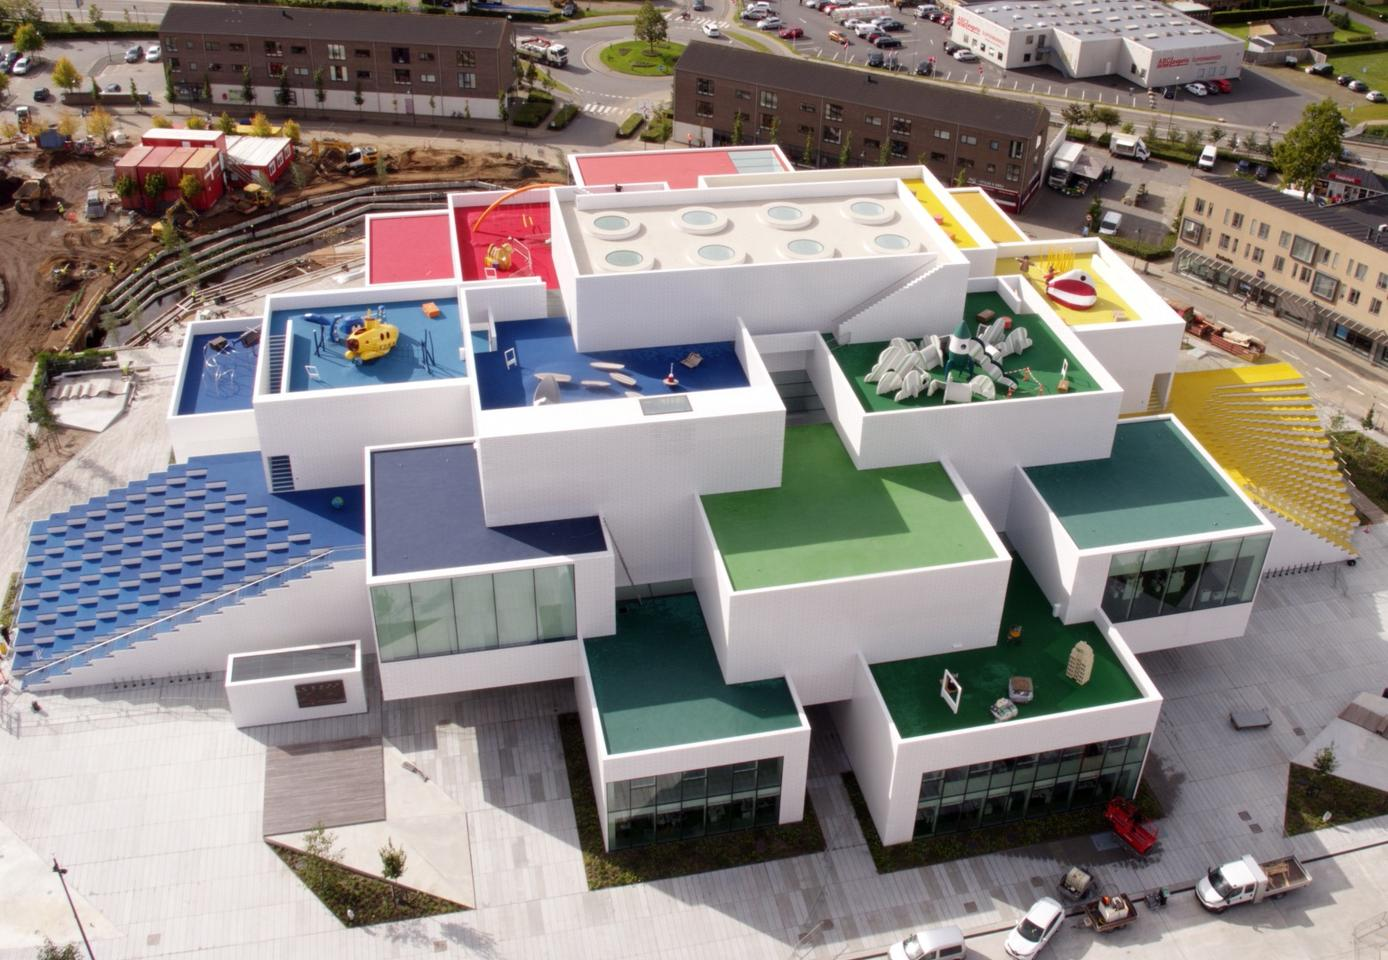 The Lego House appears to be constructed from oversized Lego bricks